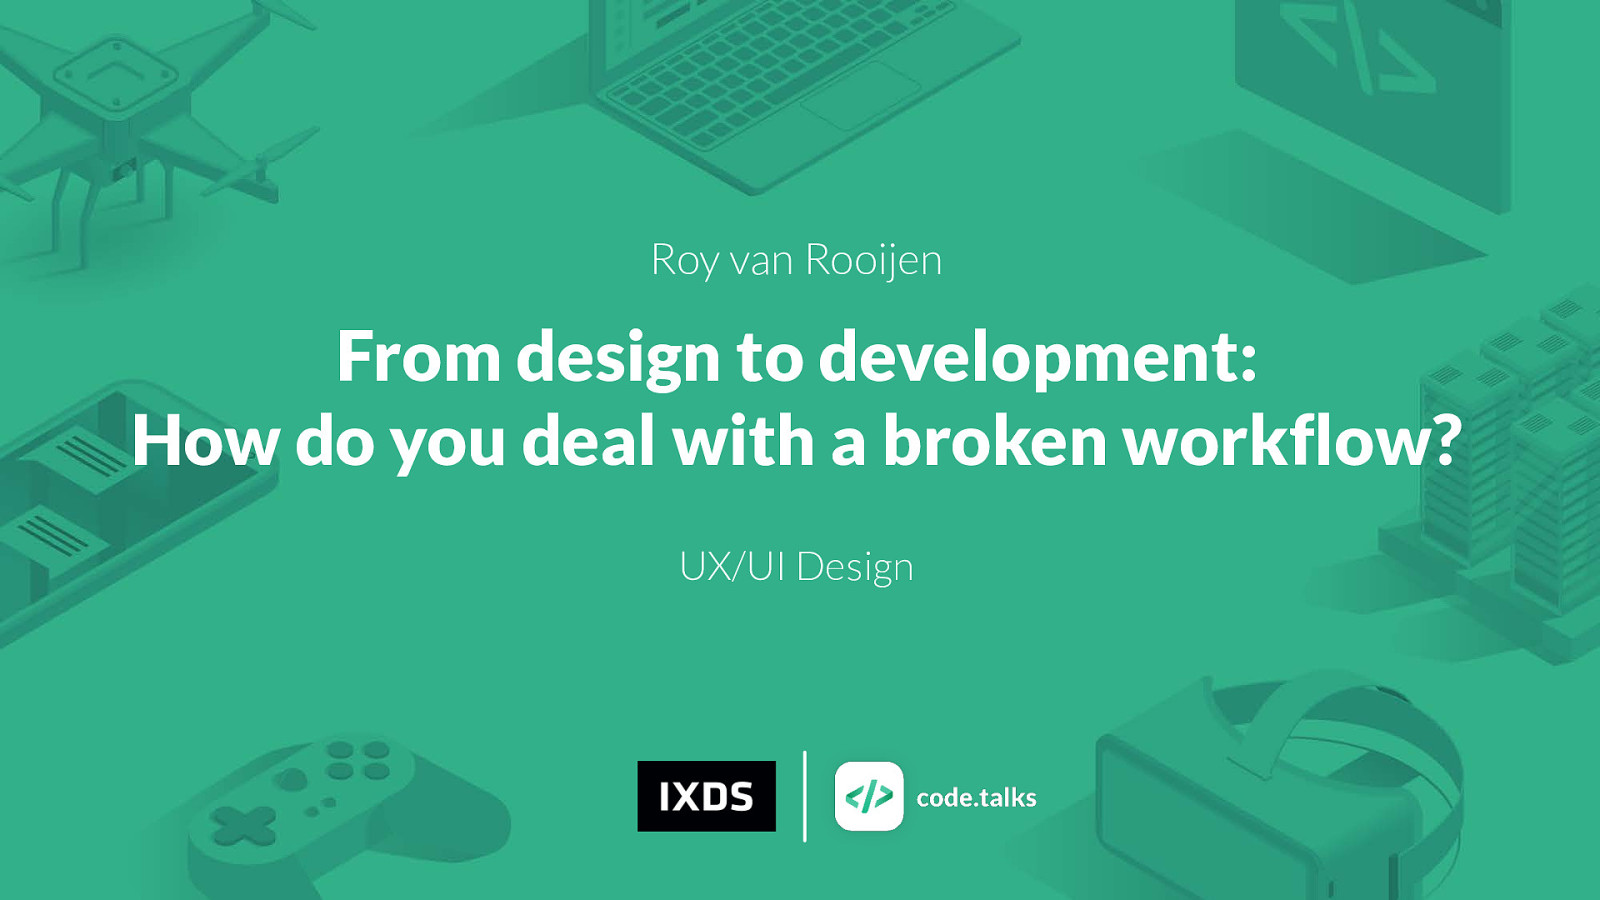 From design to development: How do you deal with a broken workflow?